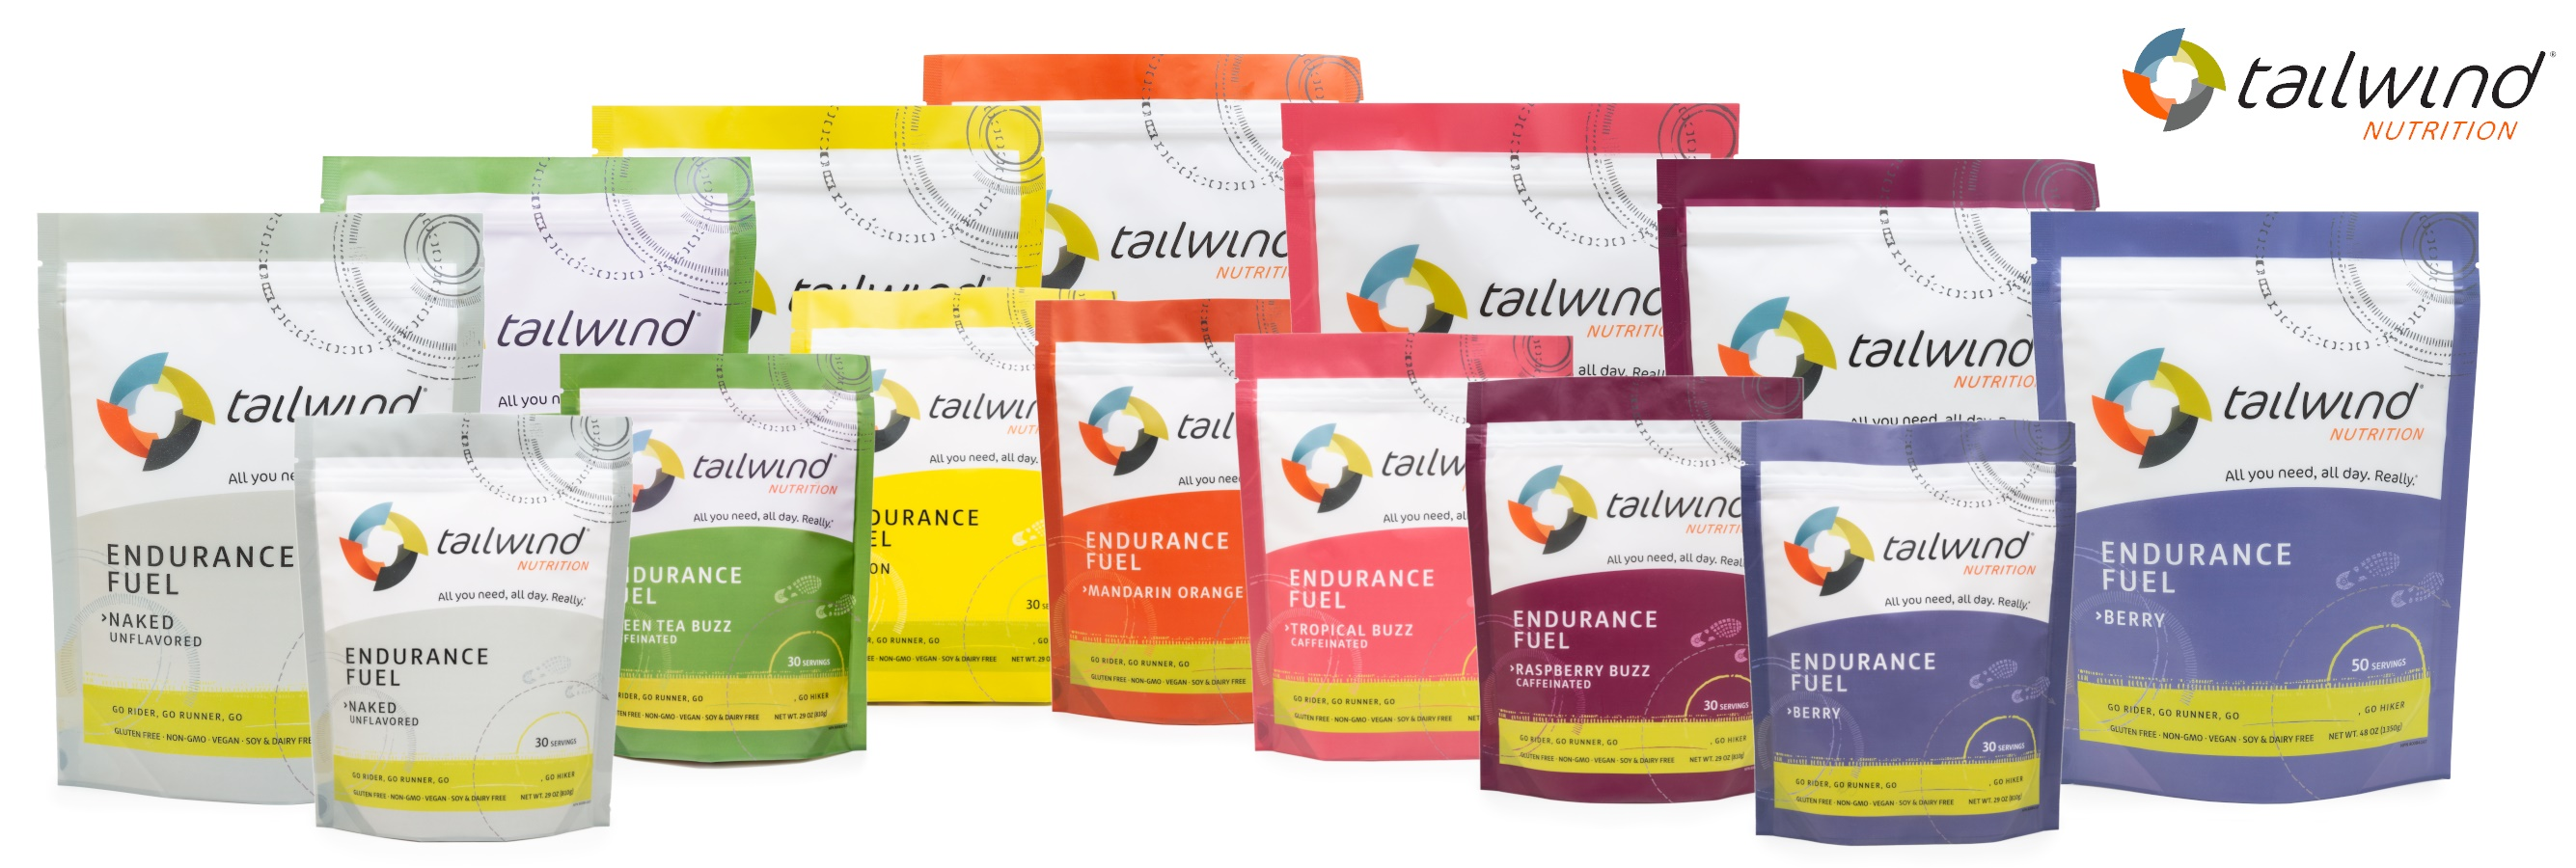 Tailwind Nutrition Offers